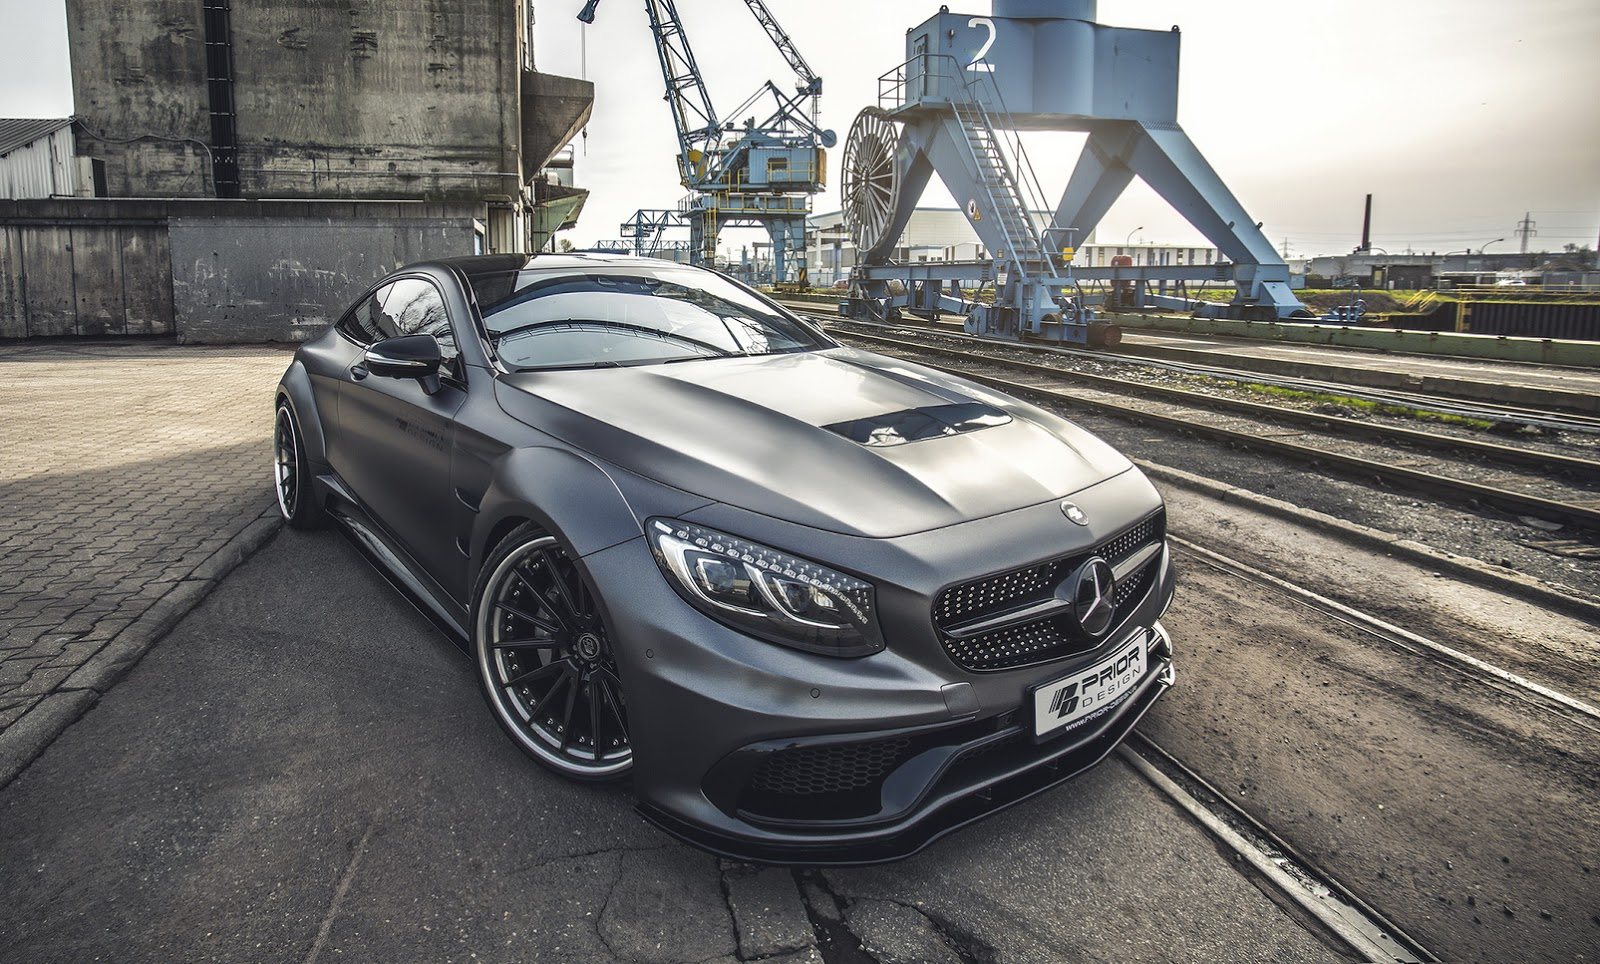 S-Class Coupe by Prior-Design (5)